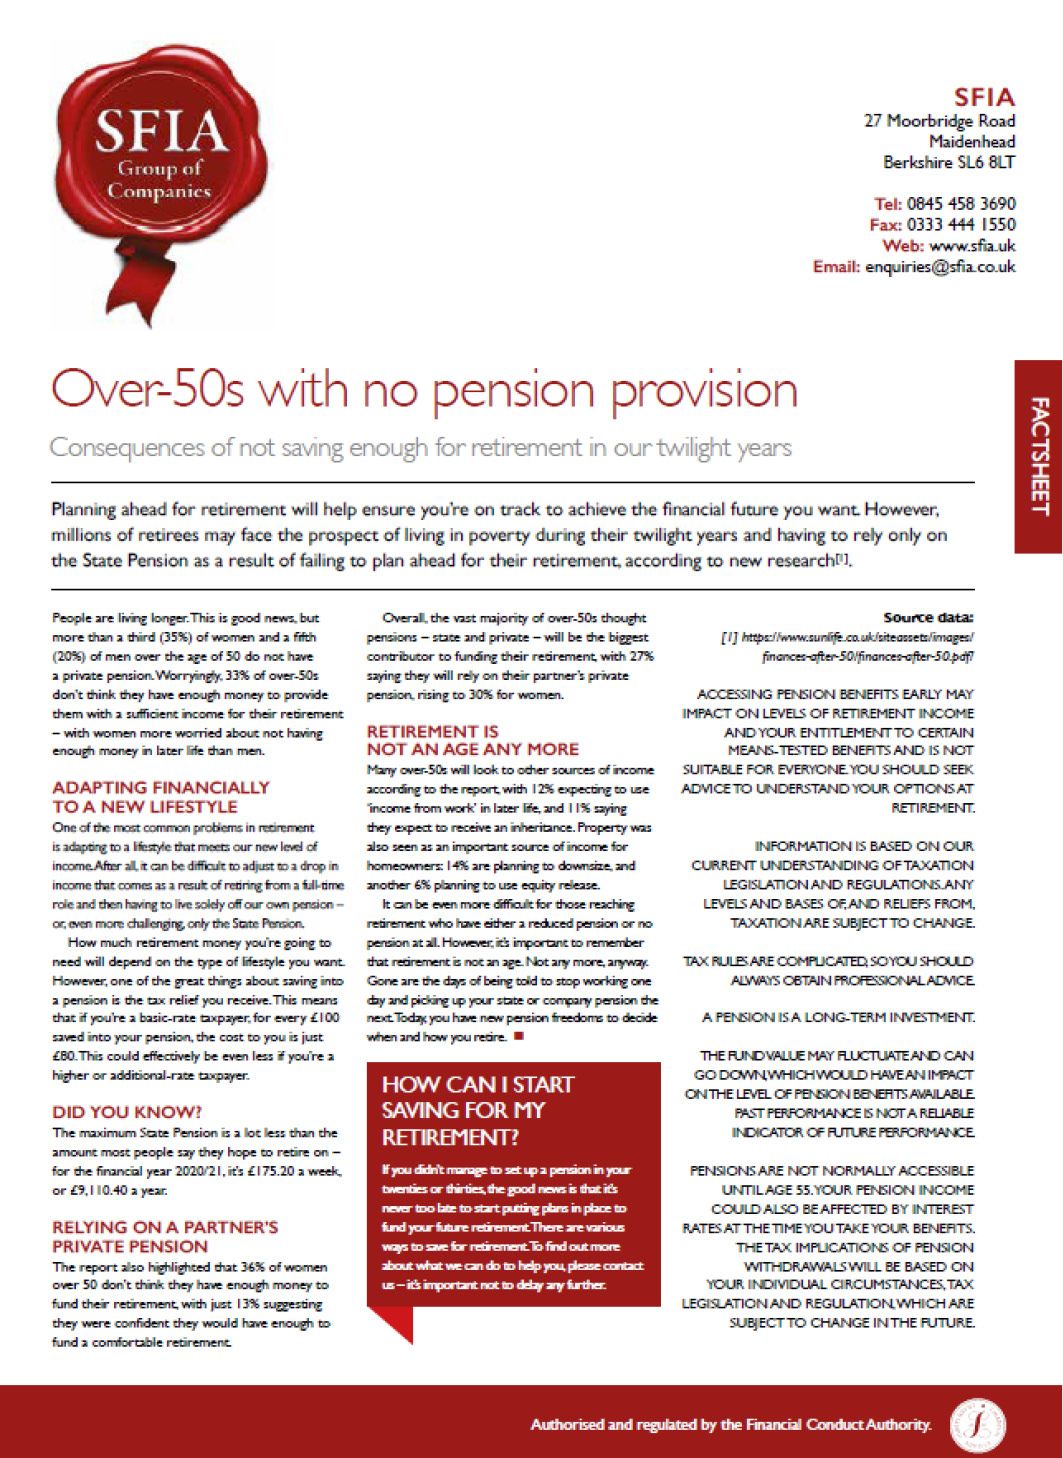 Over-50's with no pension image